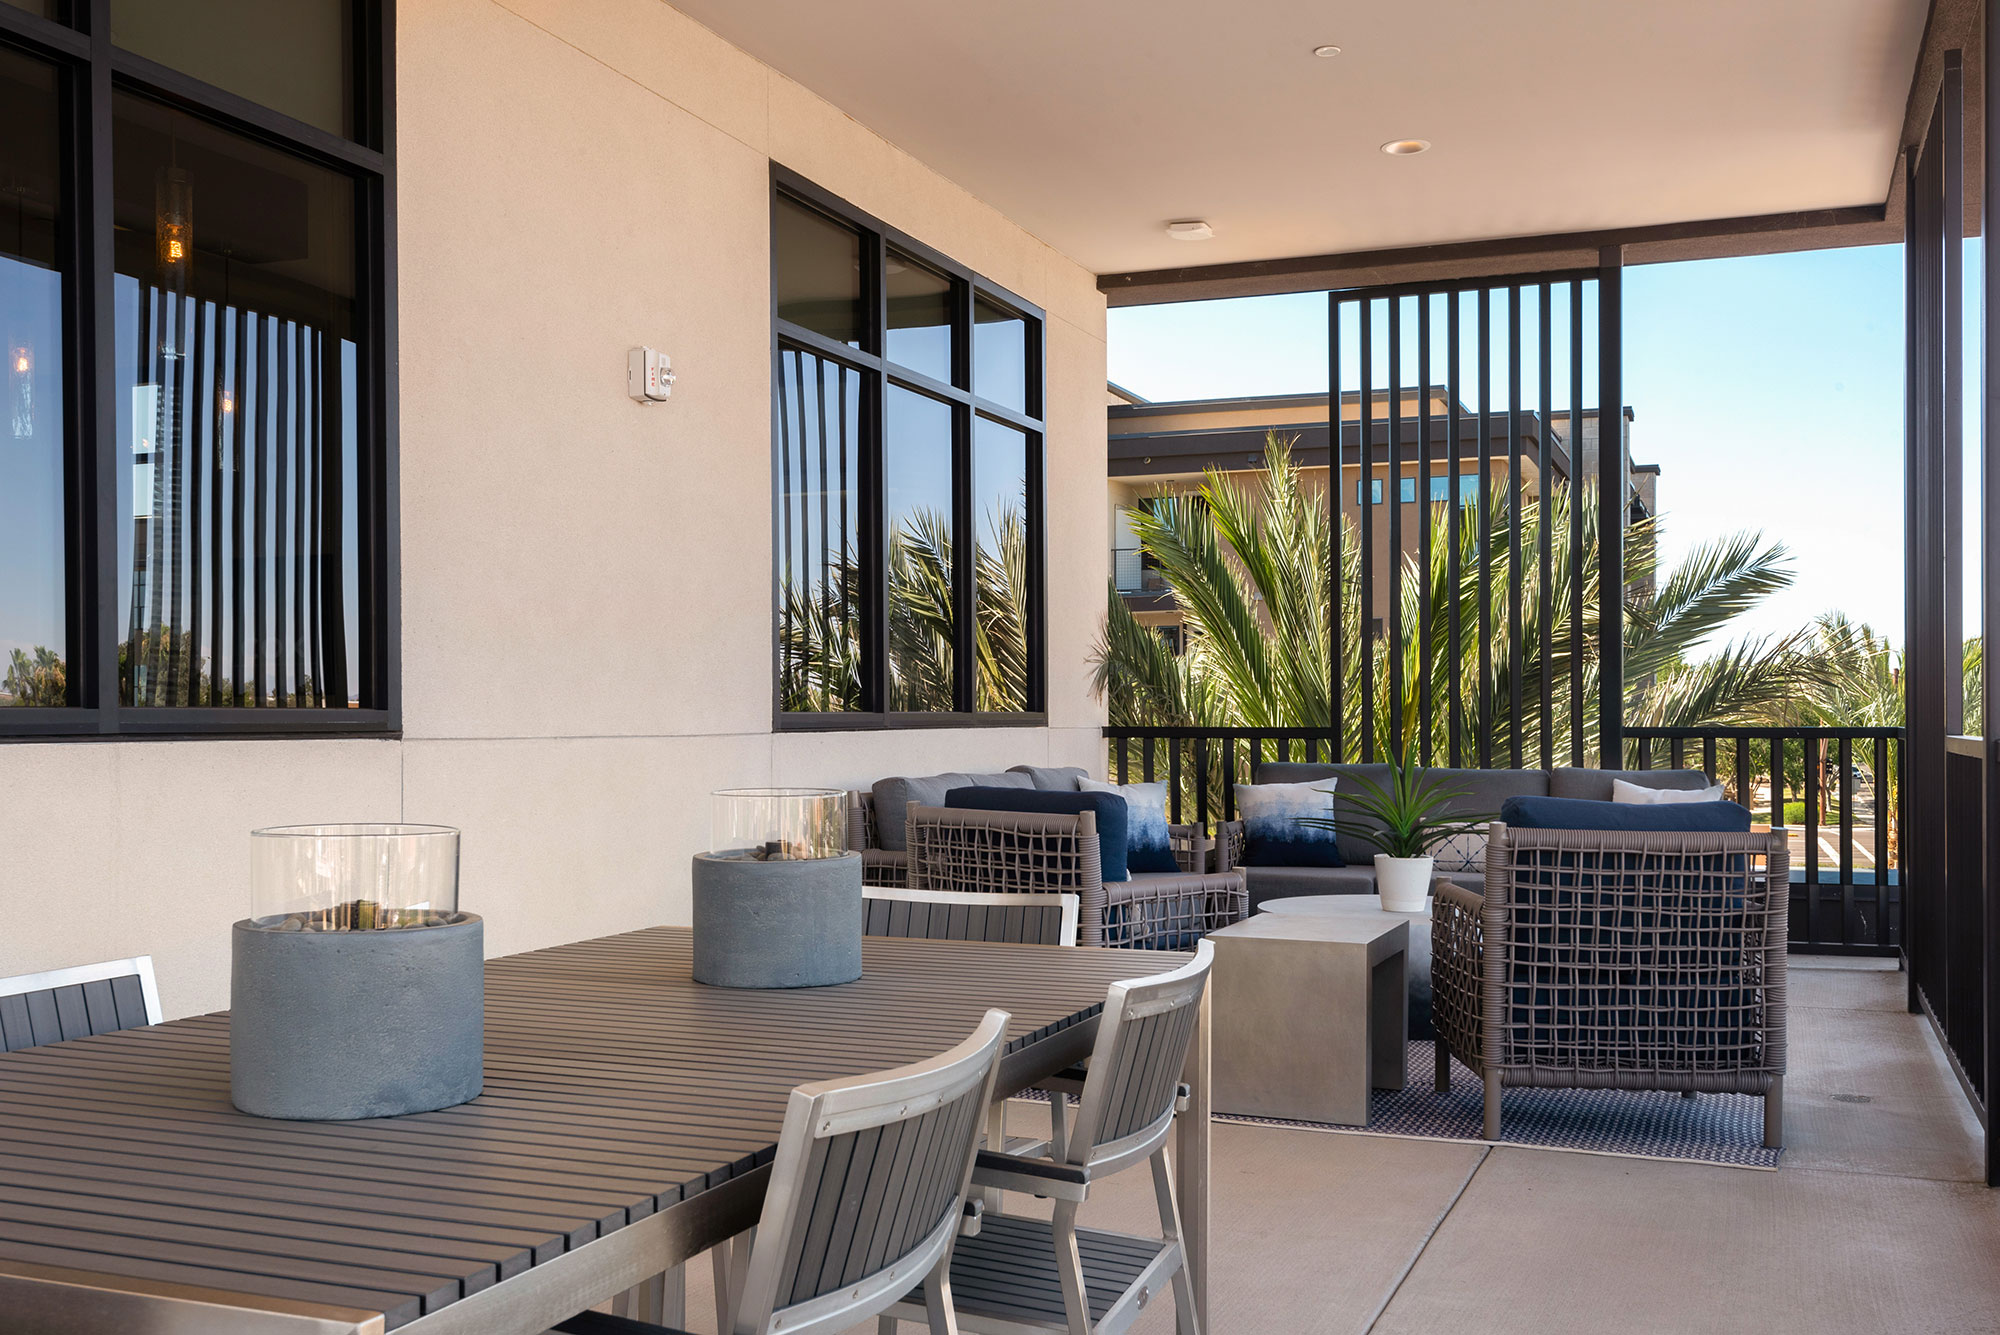 Riata - Outdoor Deck with table and seating area